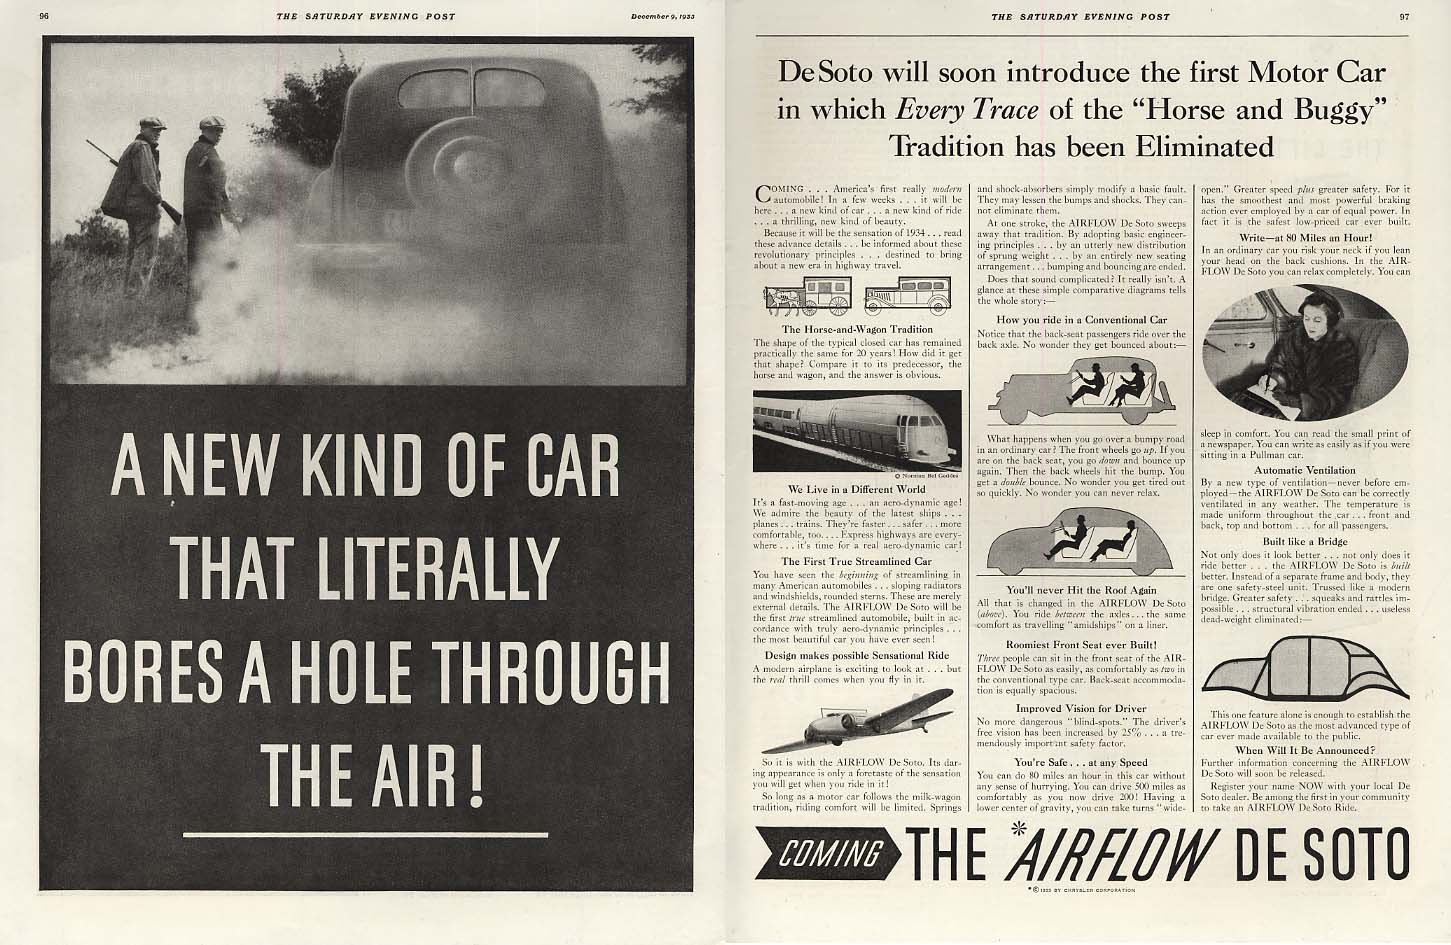 A Car that Literally Bores a Hole Through the Air! De Soto Airflow ad 1934 SEP